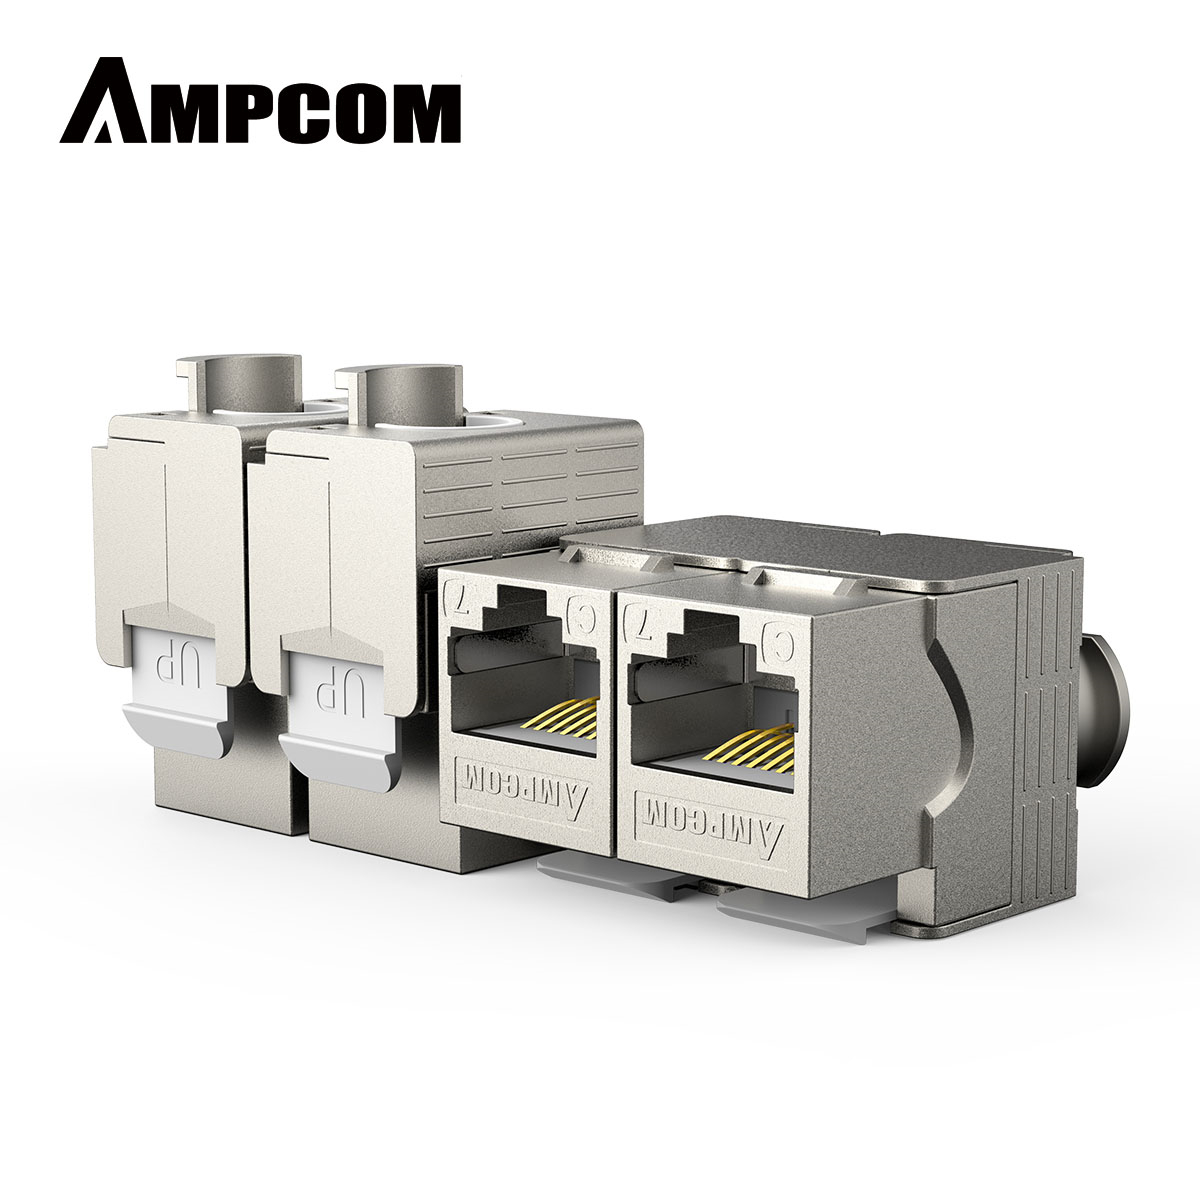 RJ45 CAT 7 Tool-Less STP Shielded Keystone Jack, AMPCOM Self-Locking Cat7 Keystone Zinc Alloy Module Coupler Adapter Wall Plate